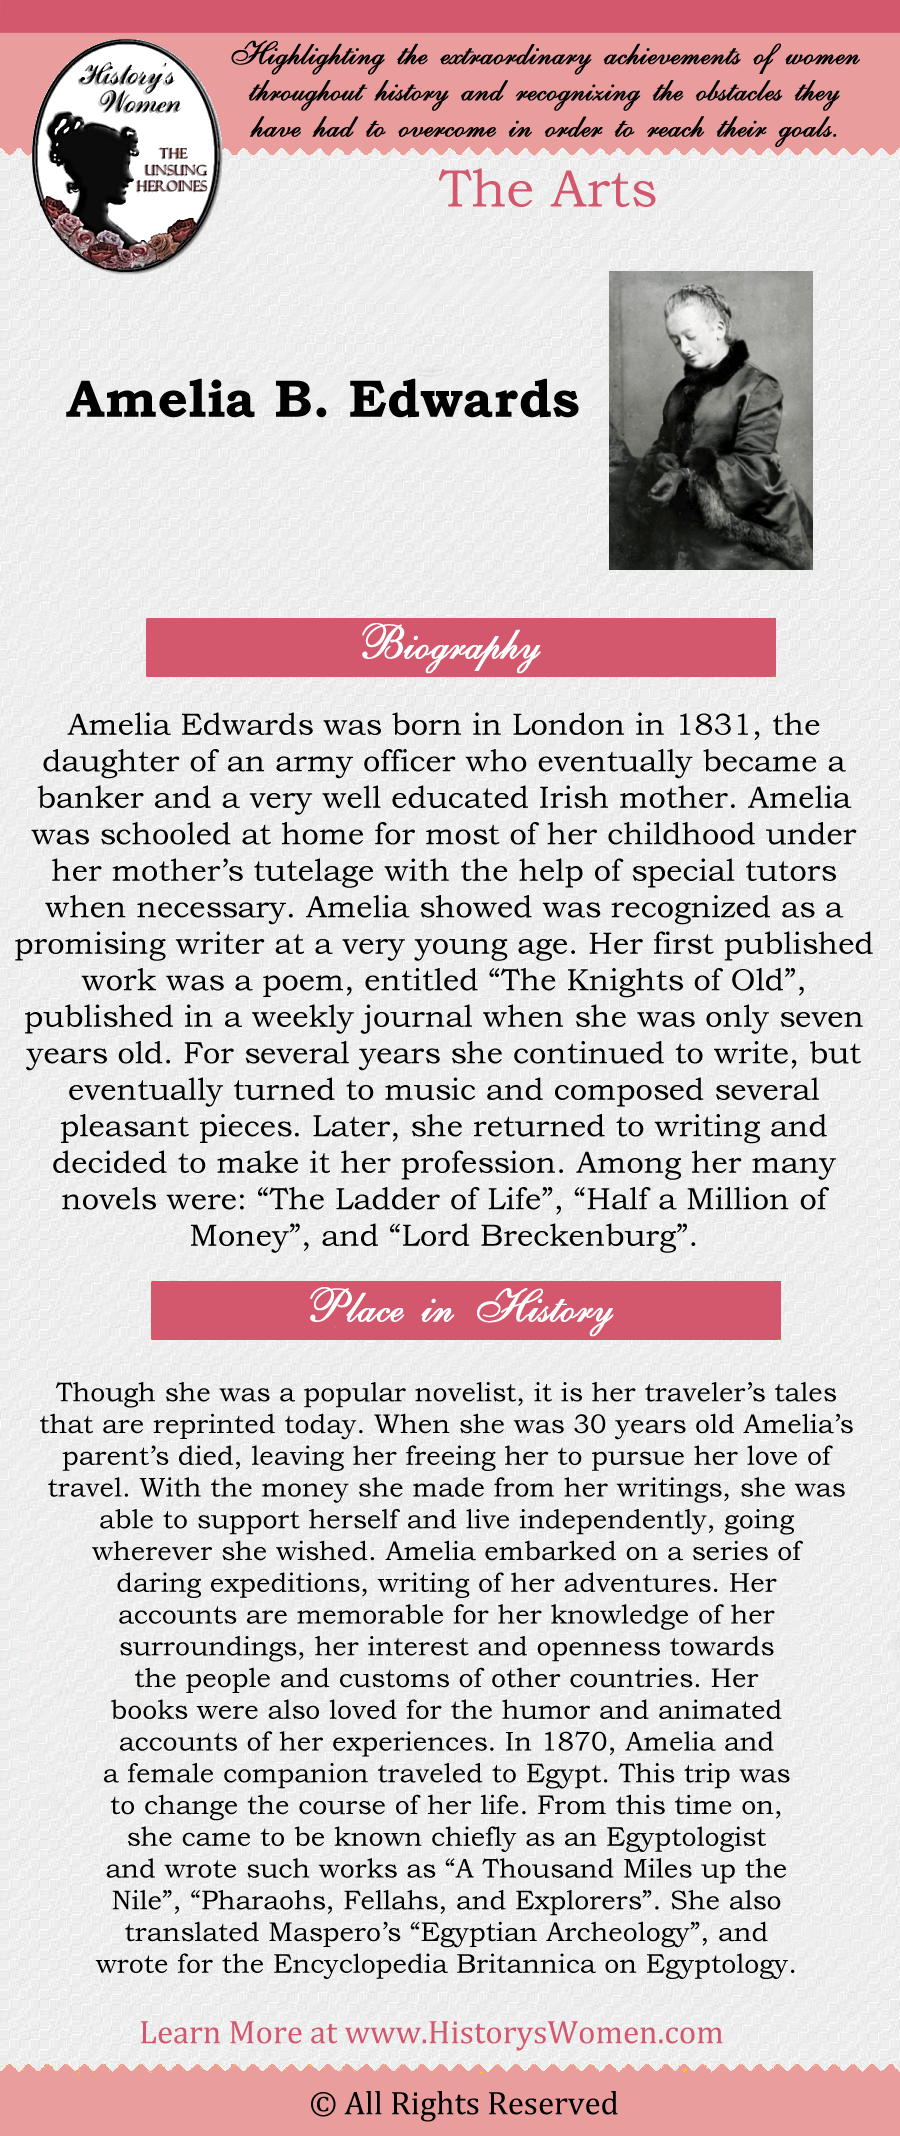 Complete article about Amelia B. Edwards found at HistorysWomen.com!